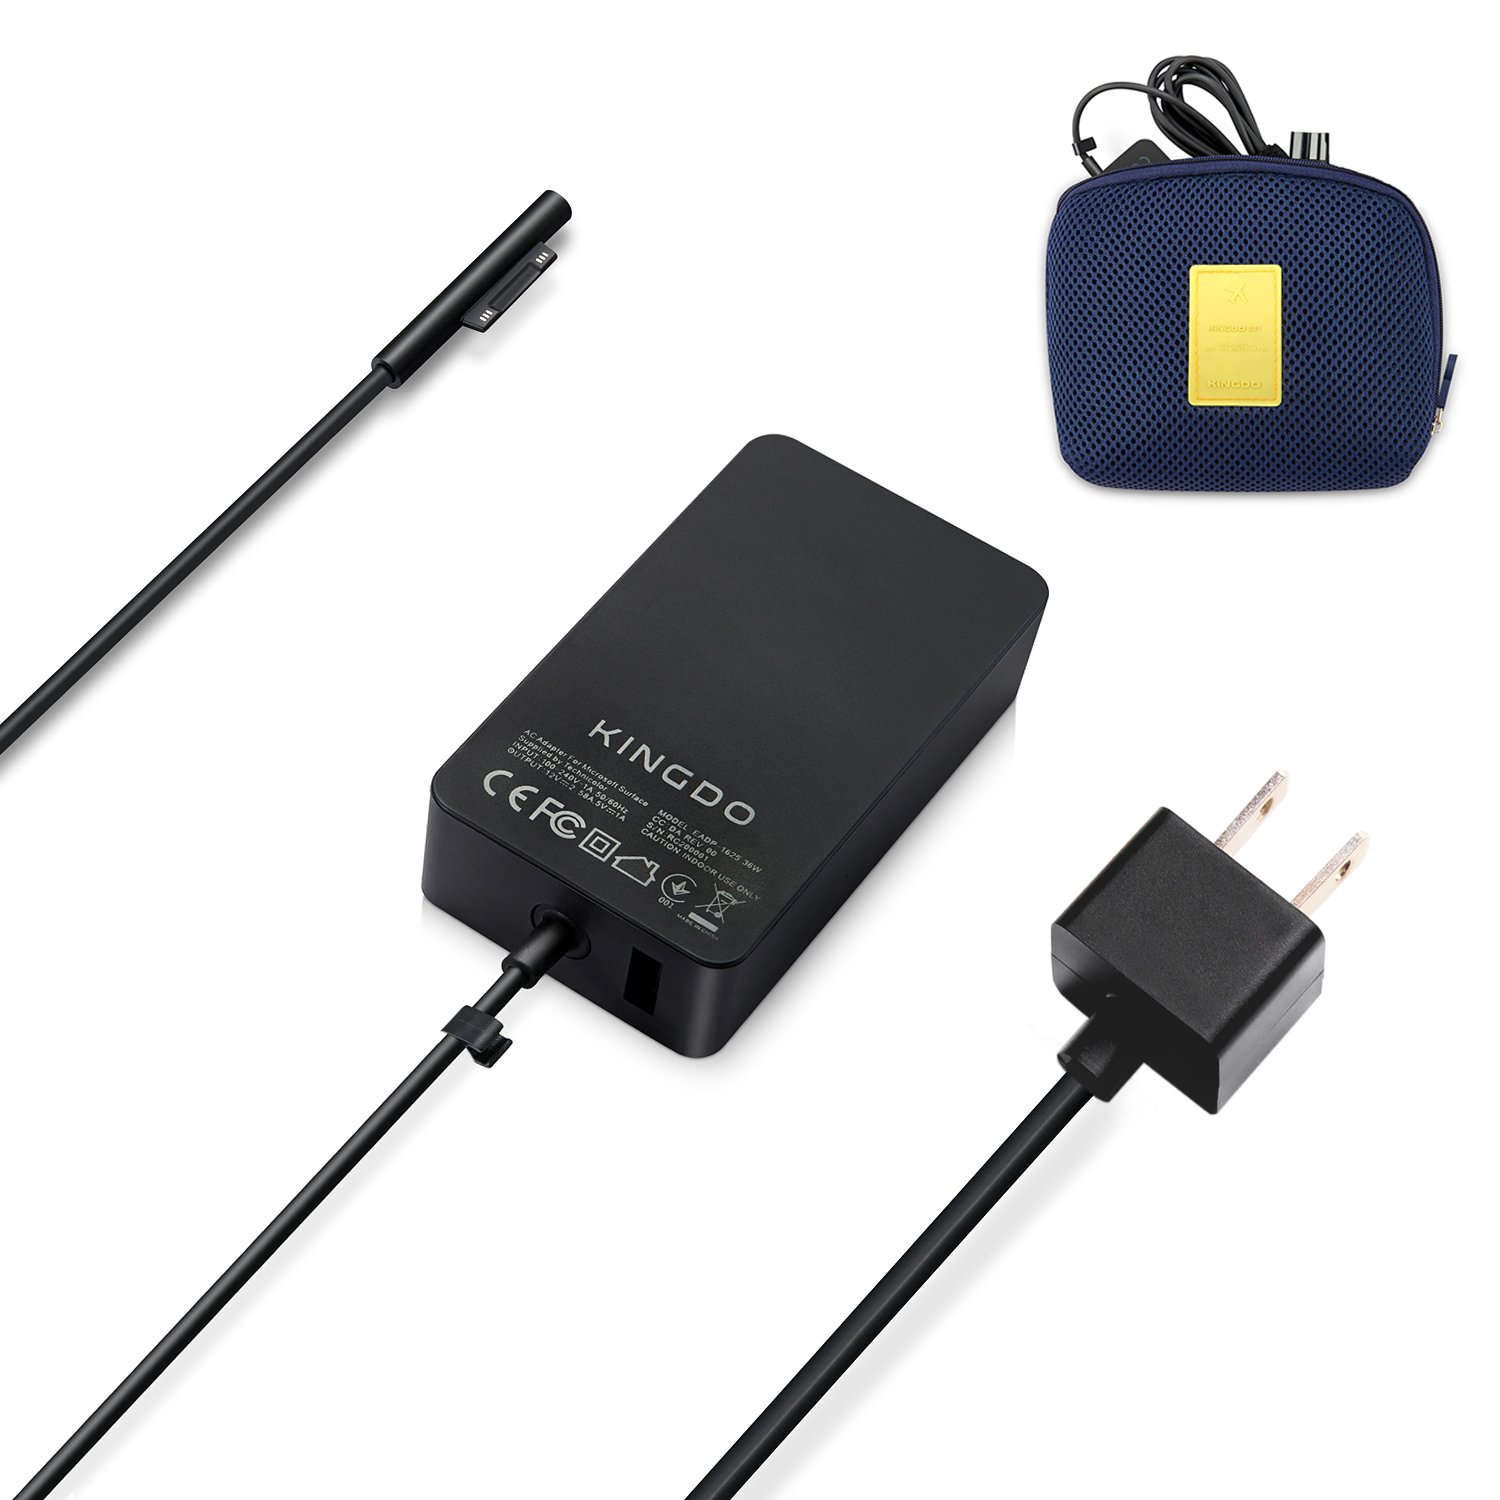 Surface Pro 4 Charger Surface Pro 3 Charger Surface Pro Charger, 36W 12V 2.58A Power Supply Compatible Microsoft Surface Pro 3 Surface Pro 4 i5 i7 Surface Pro 5 Surface Laptop Including Carrying Pouch